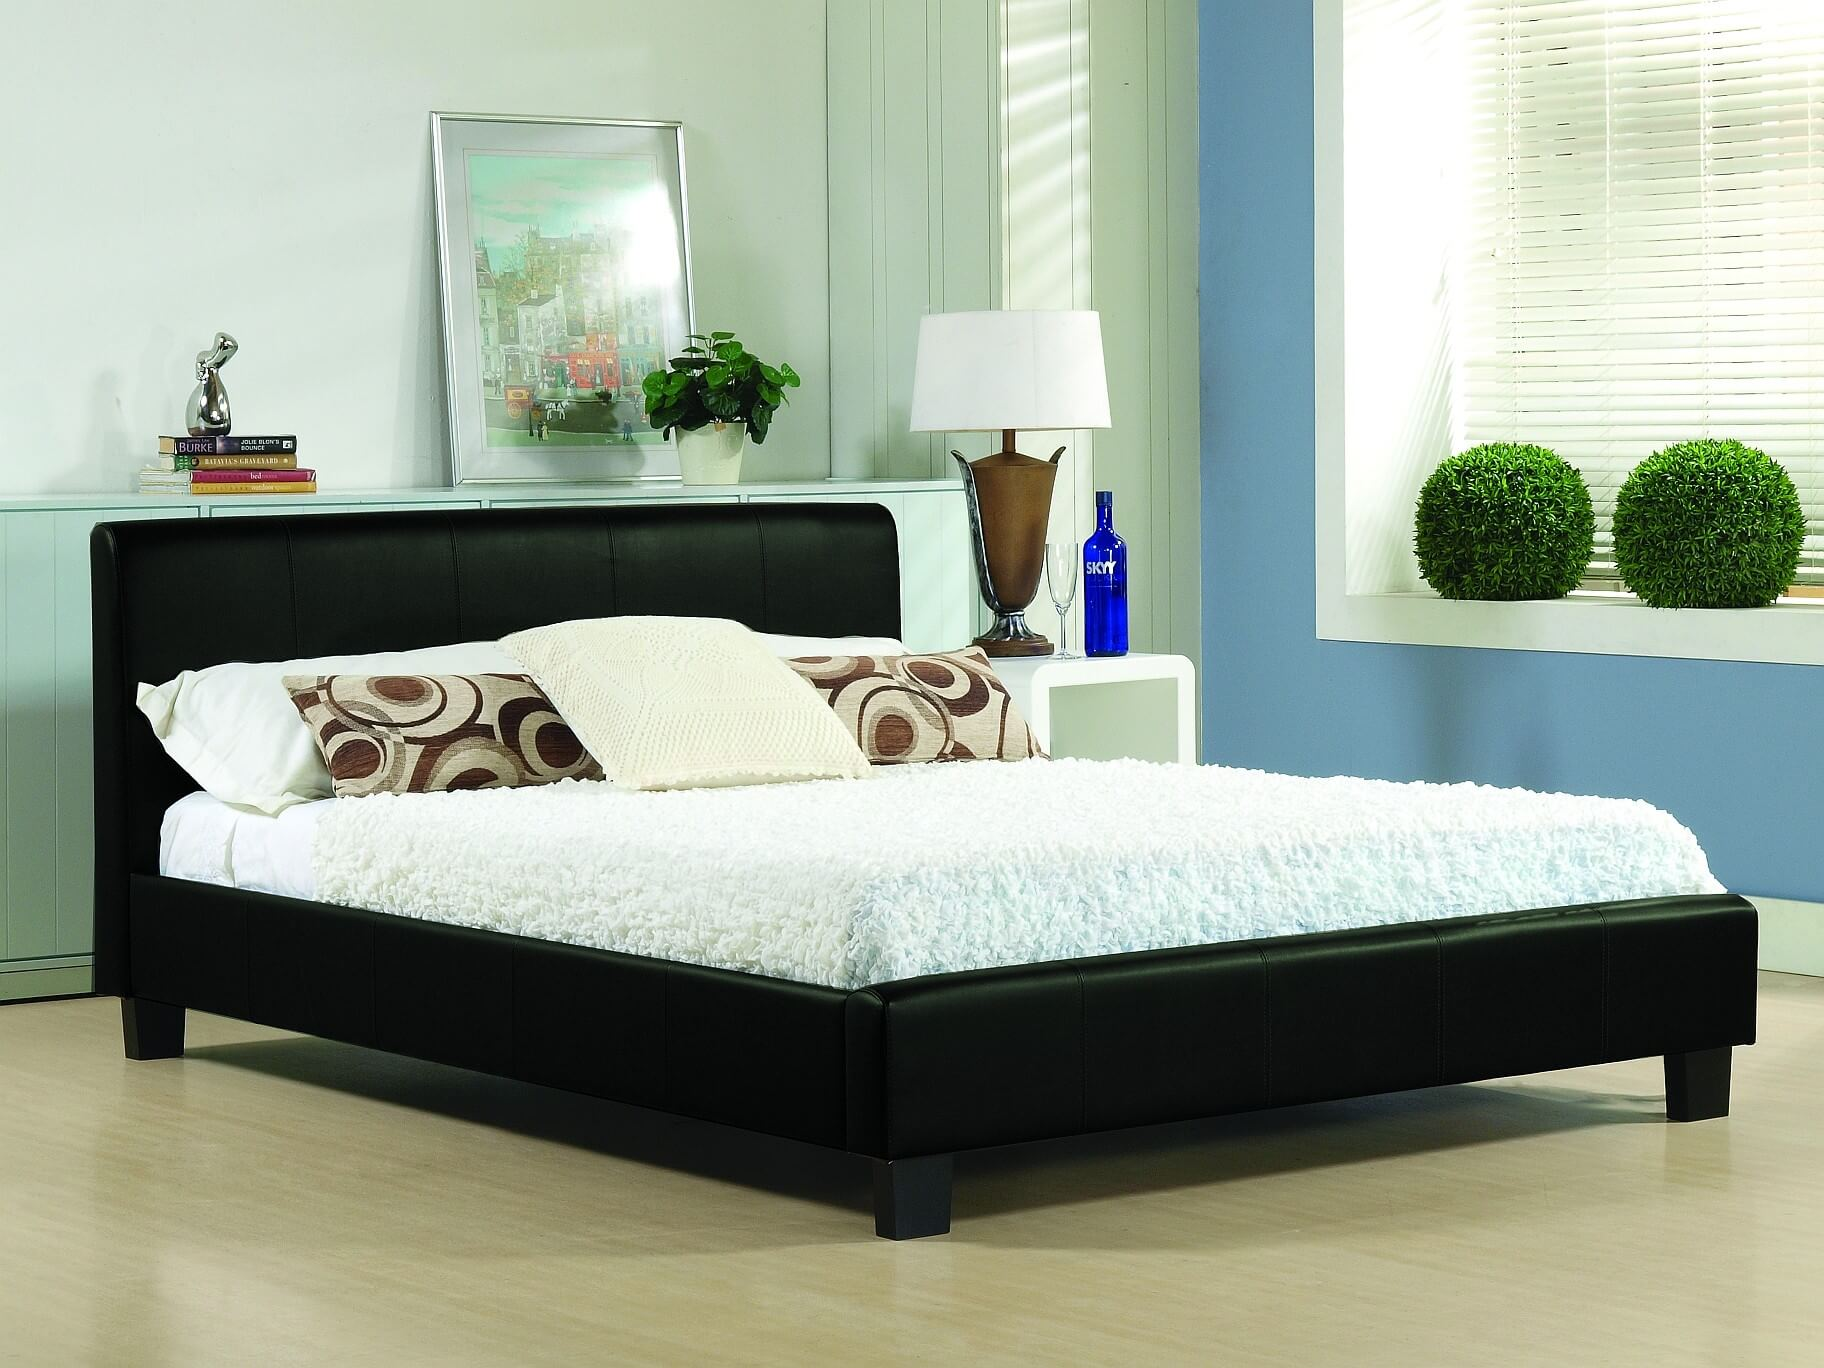 https://www.firstfurniture.co.uk/pub/media/catalog/product/h/a/hamburg_black_1_3.jpg